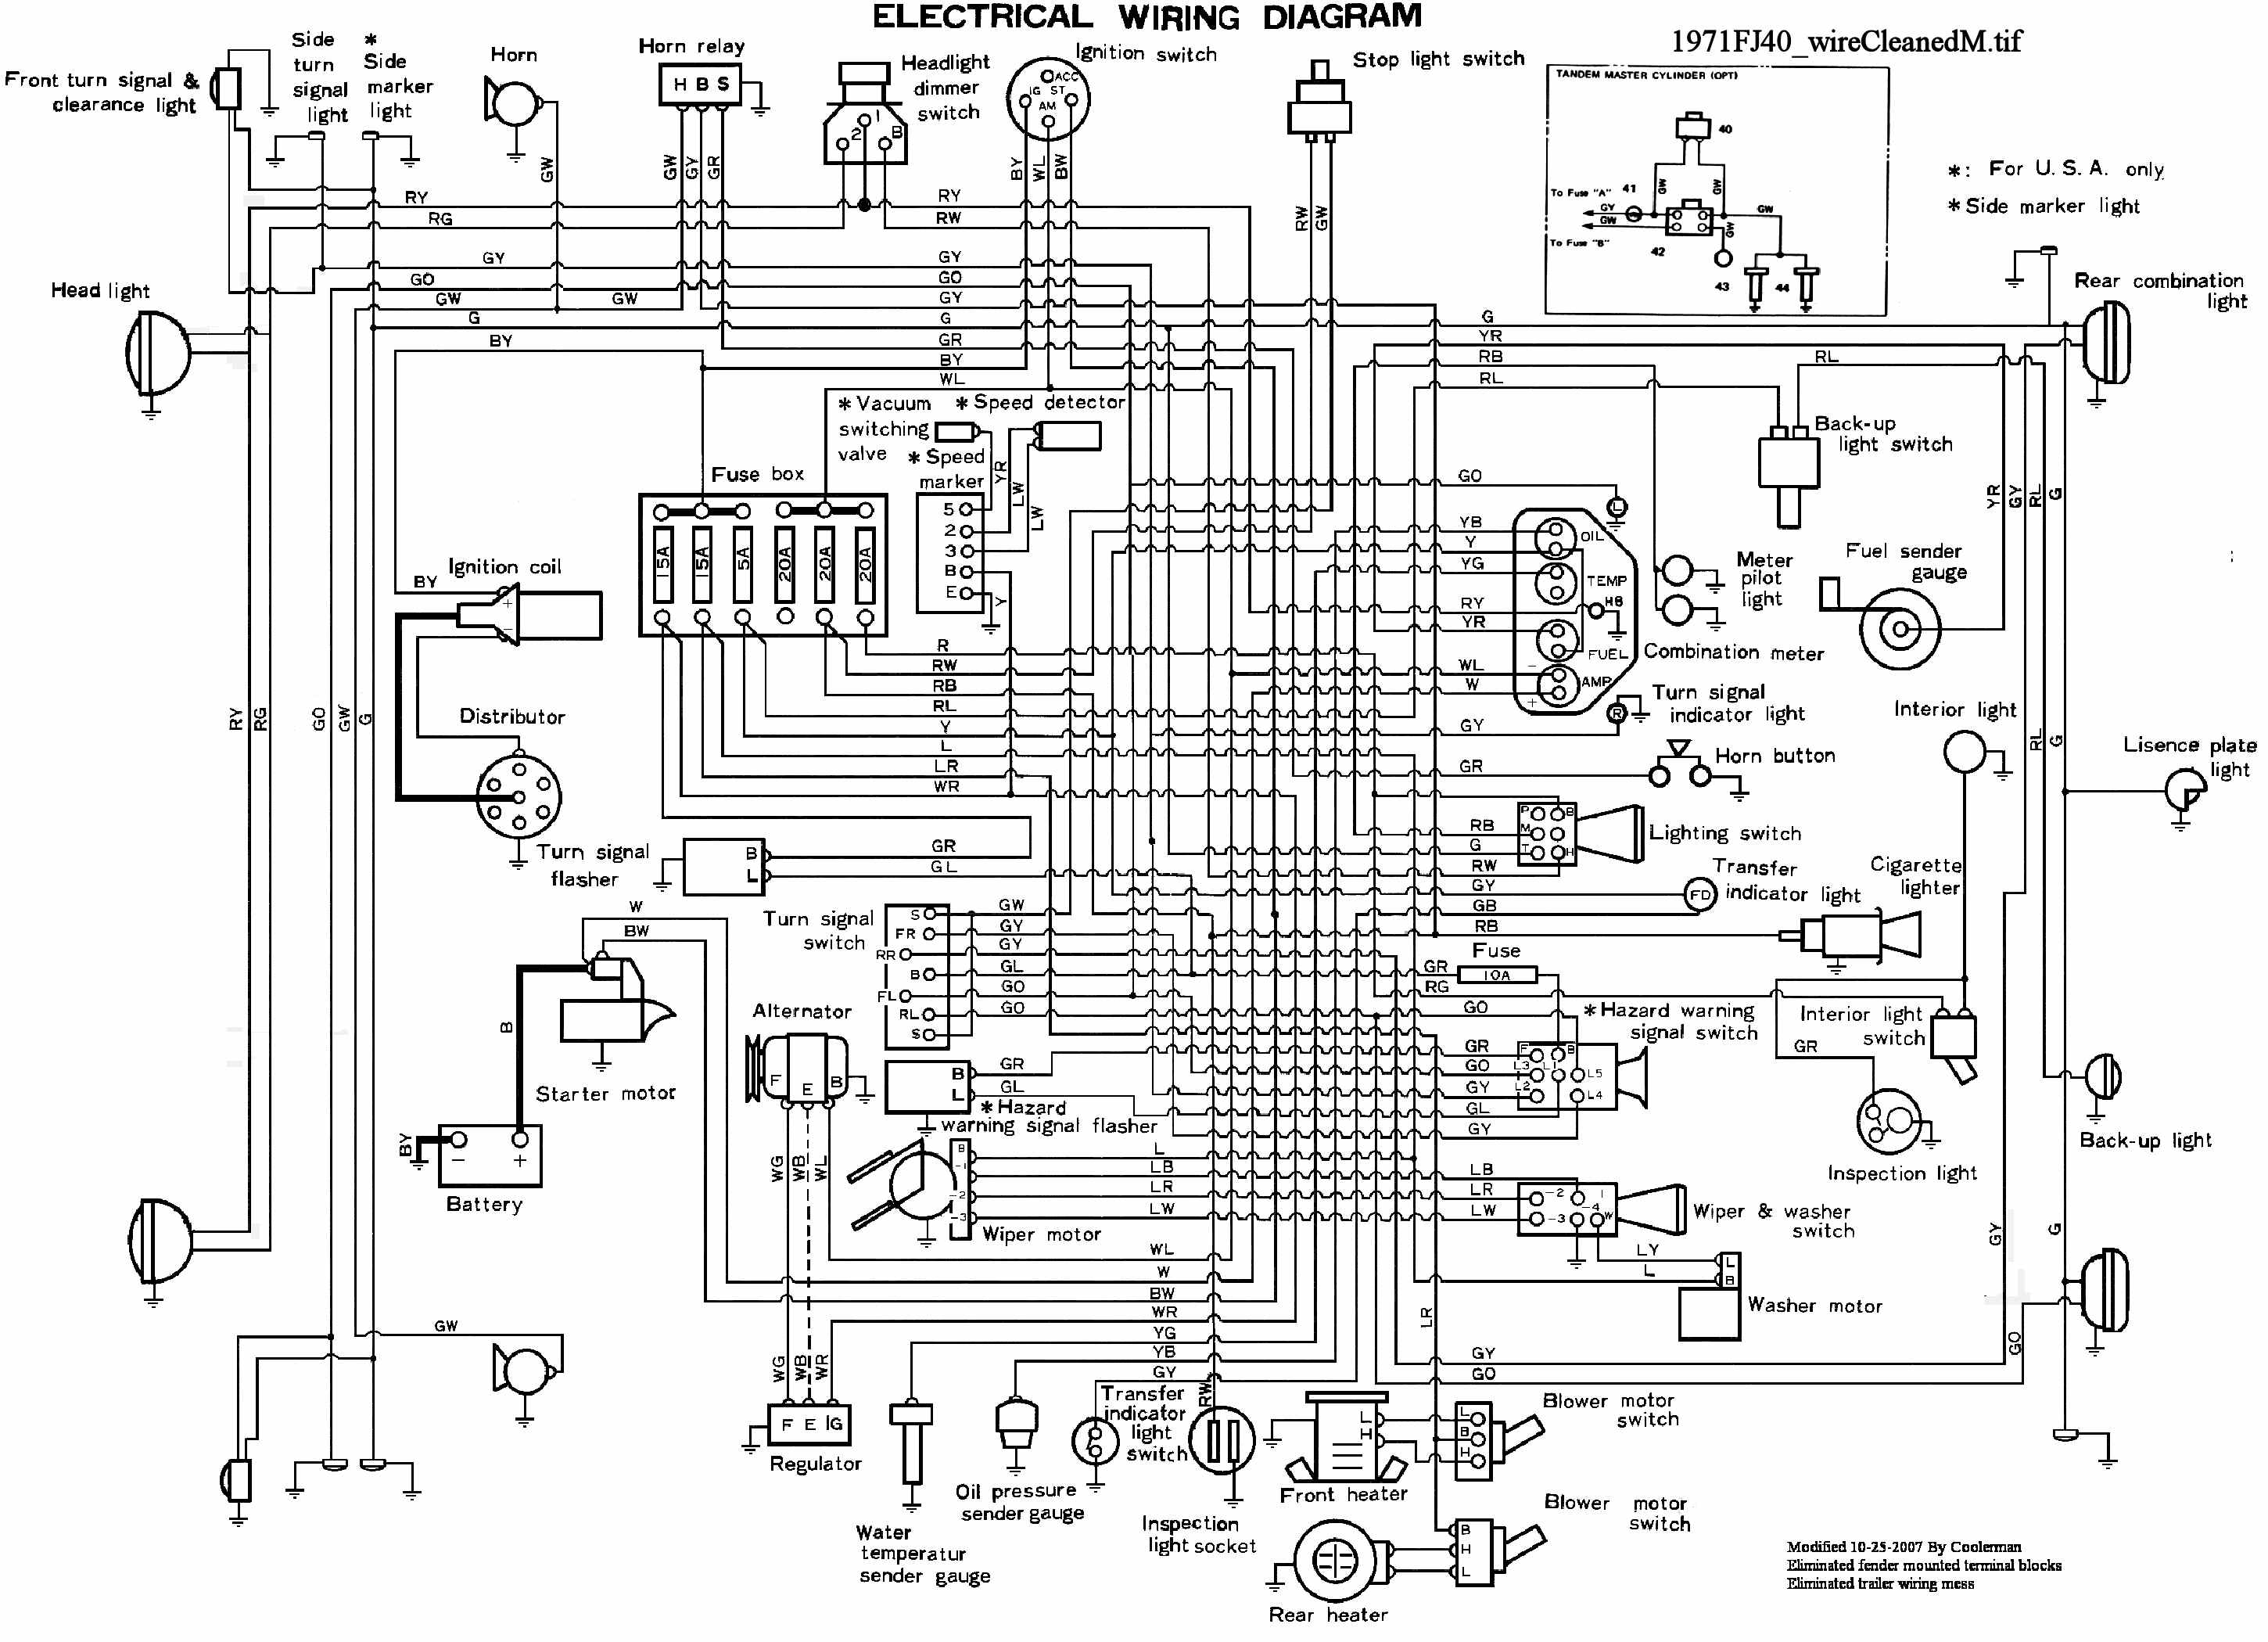 71fj40_wireCleanedM?resize\\\=665%2C481 fj40 wiring diagram painless wiring diagrams centech wiring harness fj40 at nearapp.co